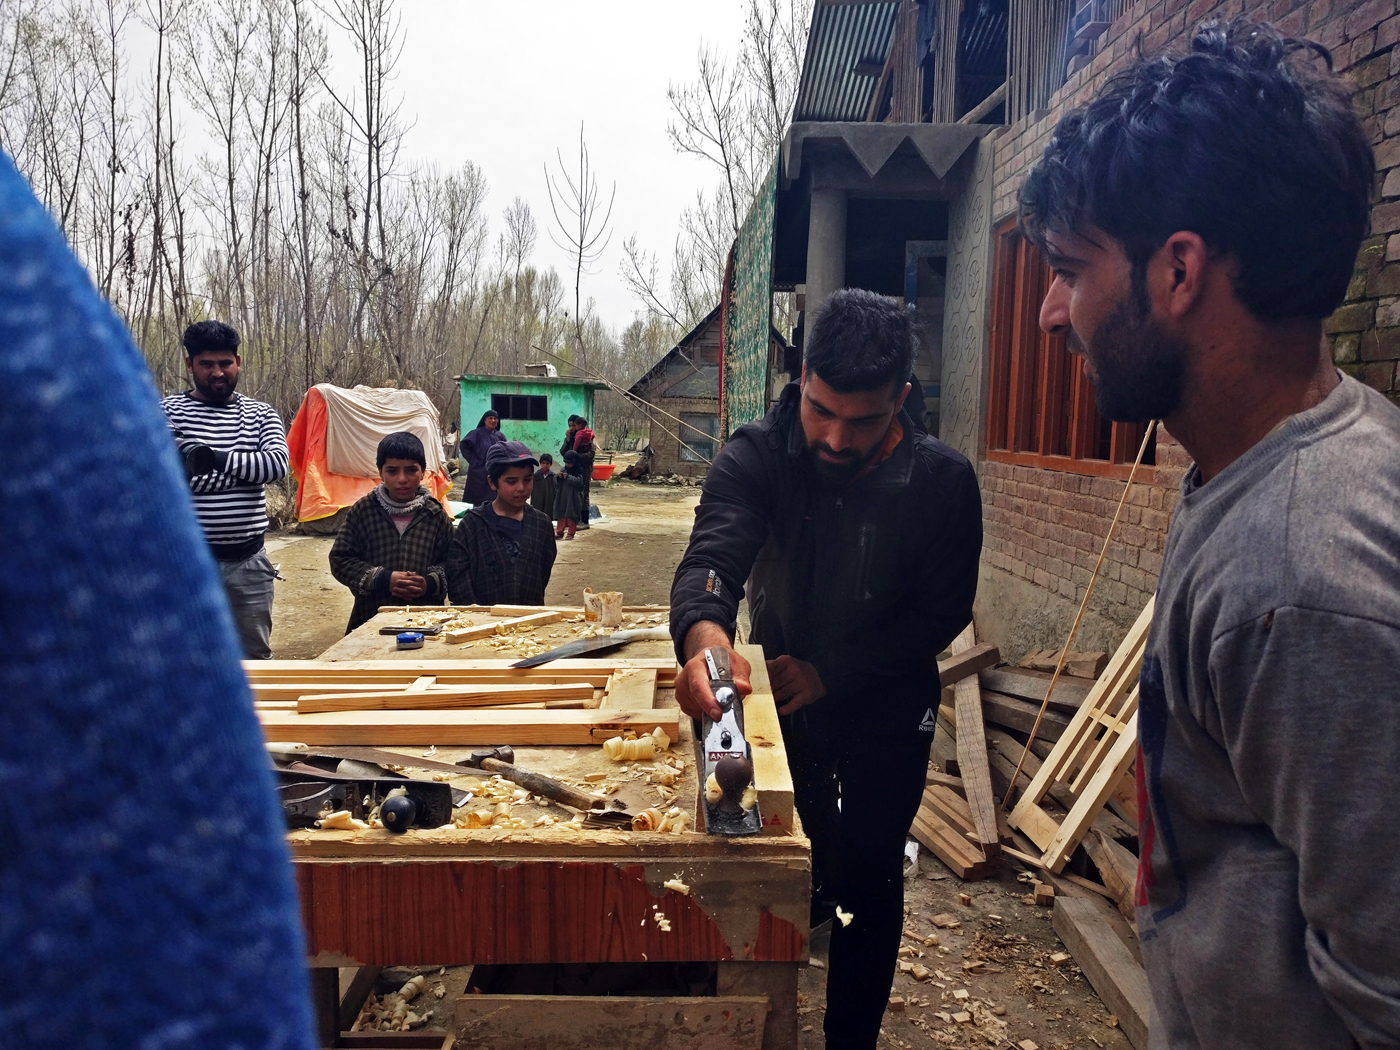 One of the many jobs Dar juggled to support his family was working at the local wood shop